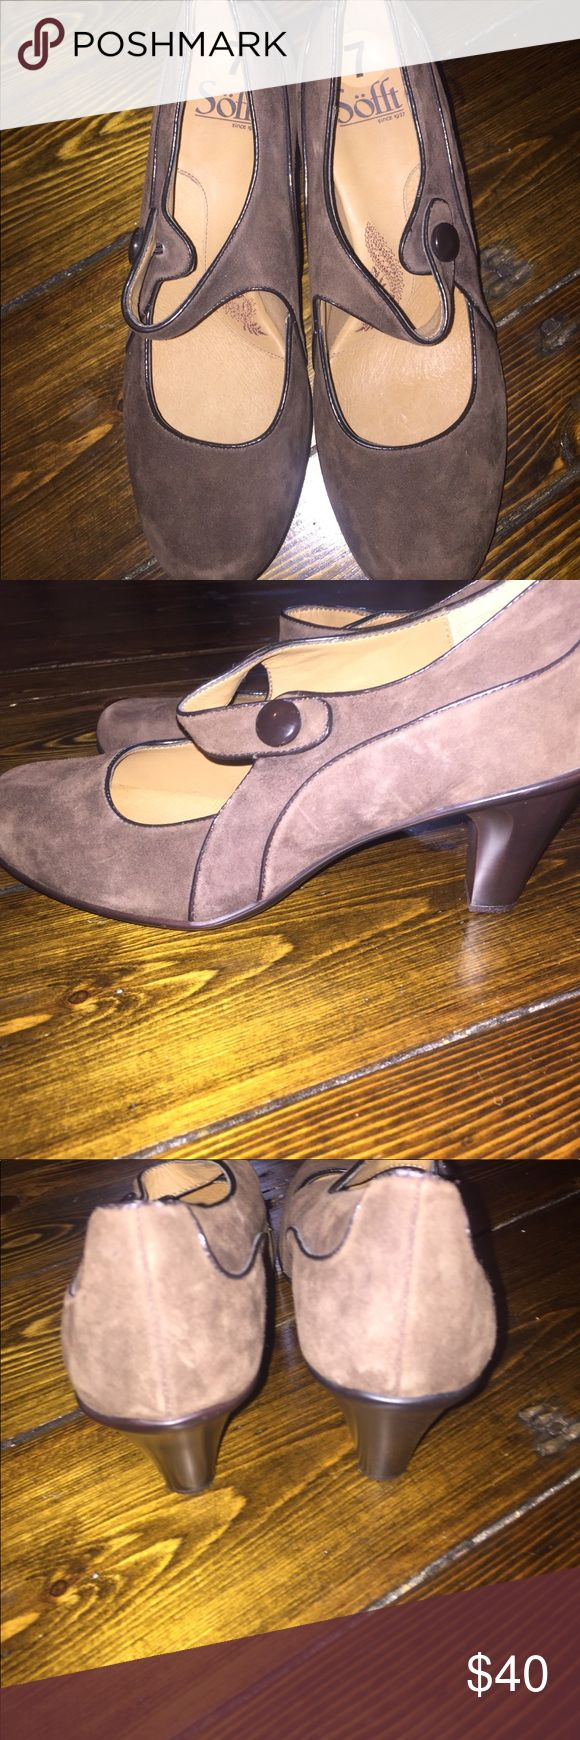 Brown Sofft shoes EUC!!! Gorgeous chocolate brown suede Mary Jane style shoe. Dark Brown patent leather trim. With a brown button. Worn once. Very clean. Sofft brand. Sooo comfy. Very similar to Born brand. I have some Born brand clogs size 7 listed in my closet also! Bundle & save!!! Sofft Shoes Heels